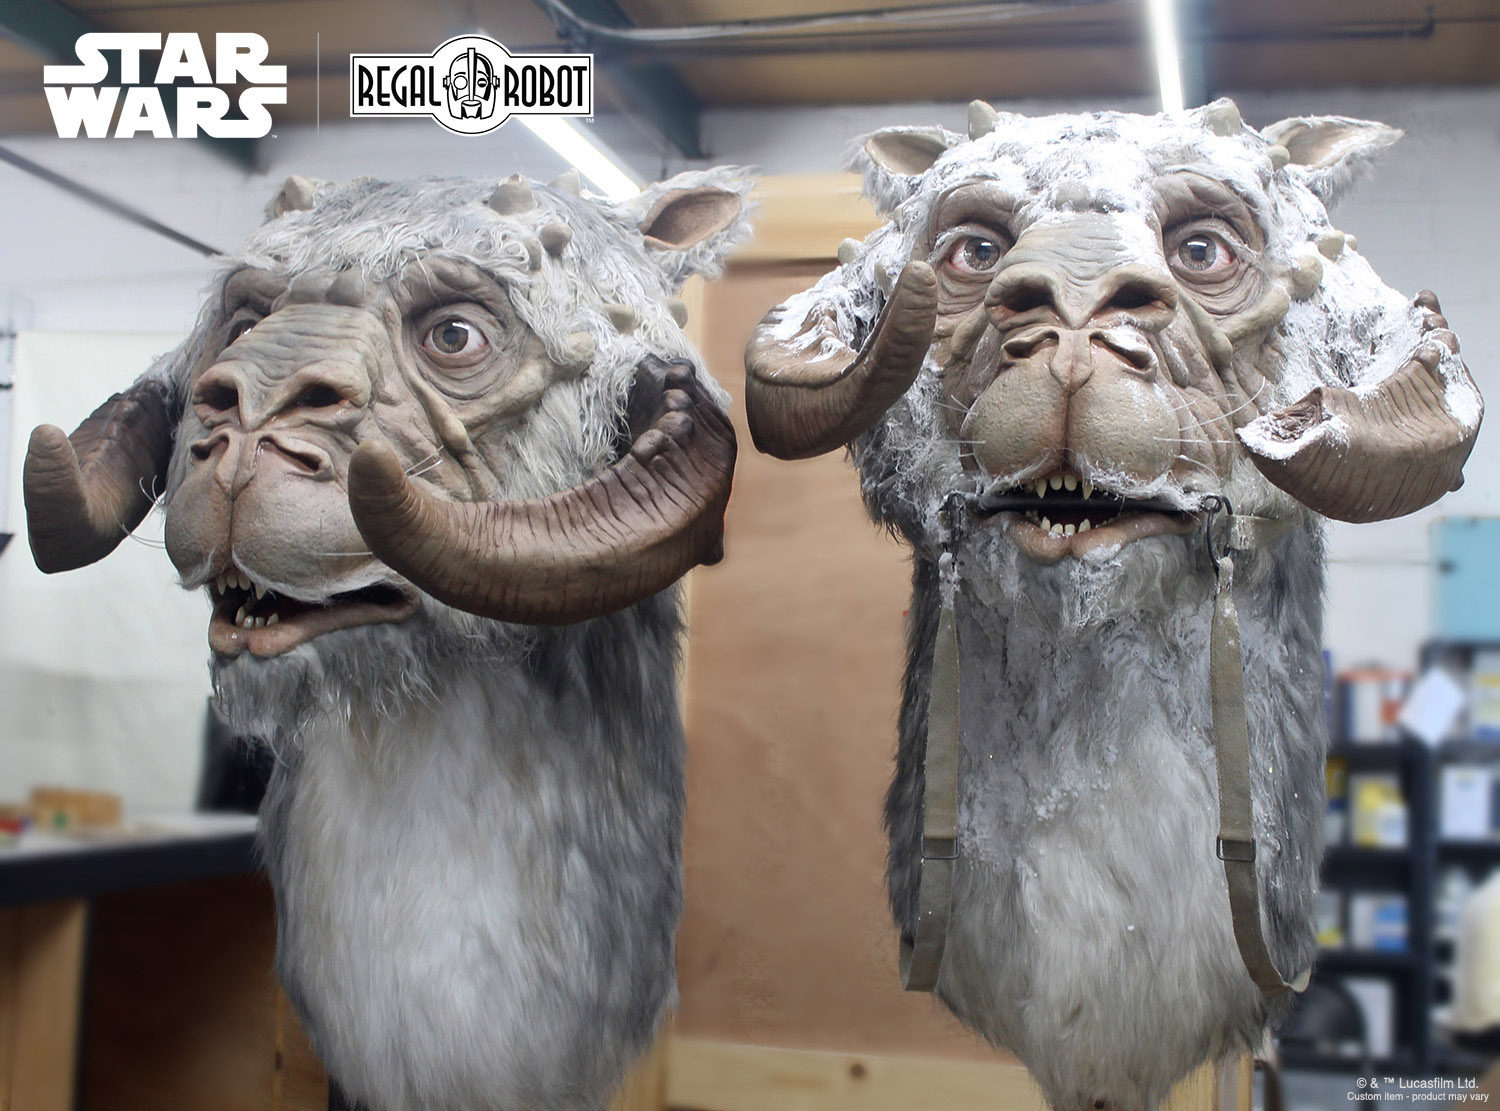 Custom Empire Strikes Back 1:1 tauntaun busts by Regal Robot